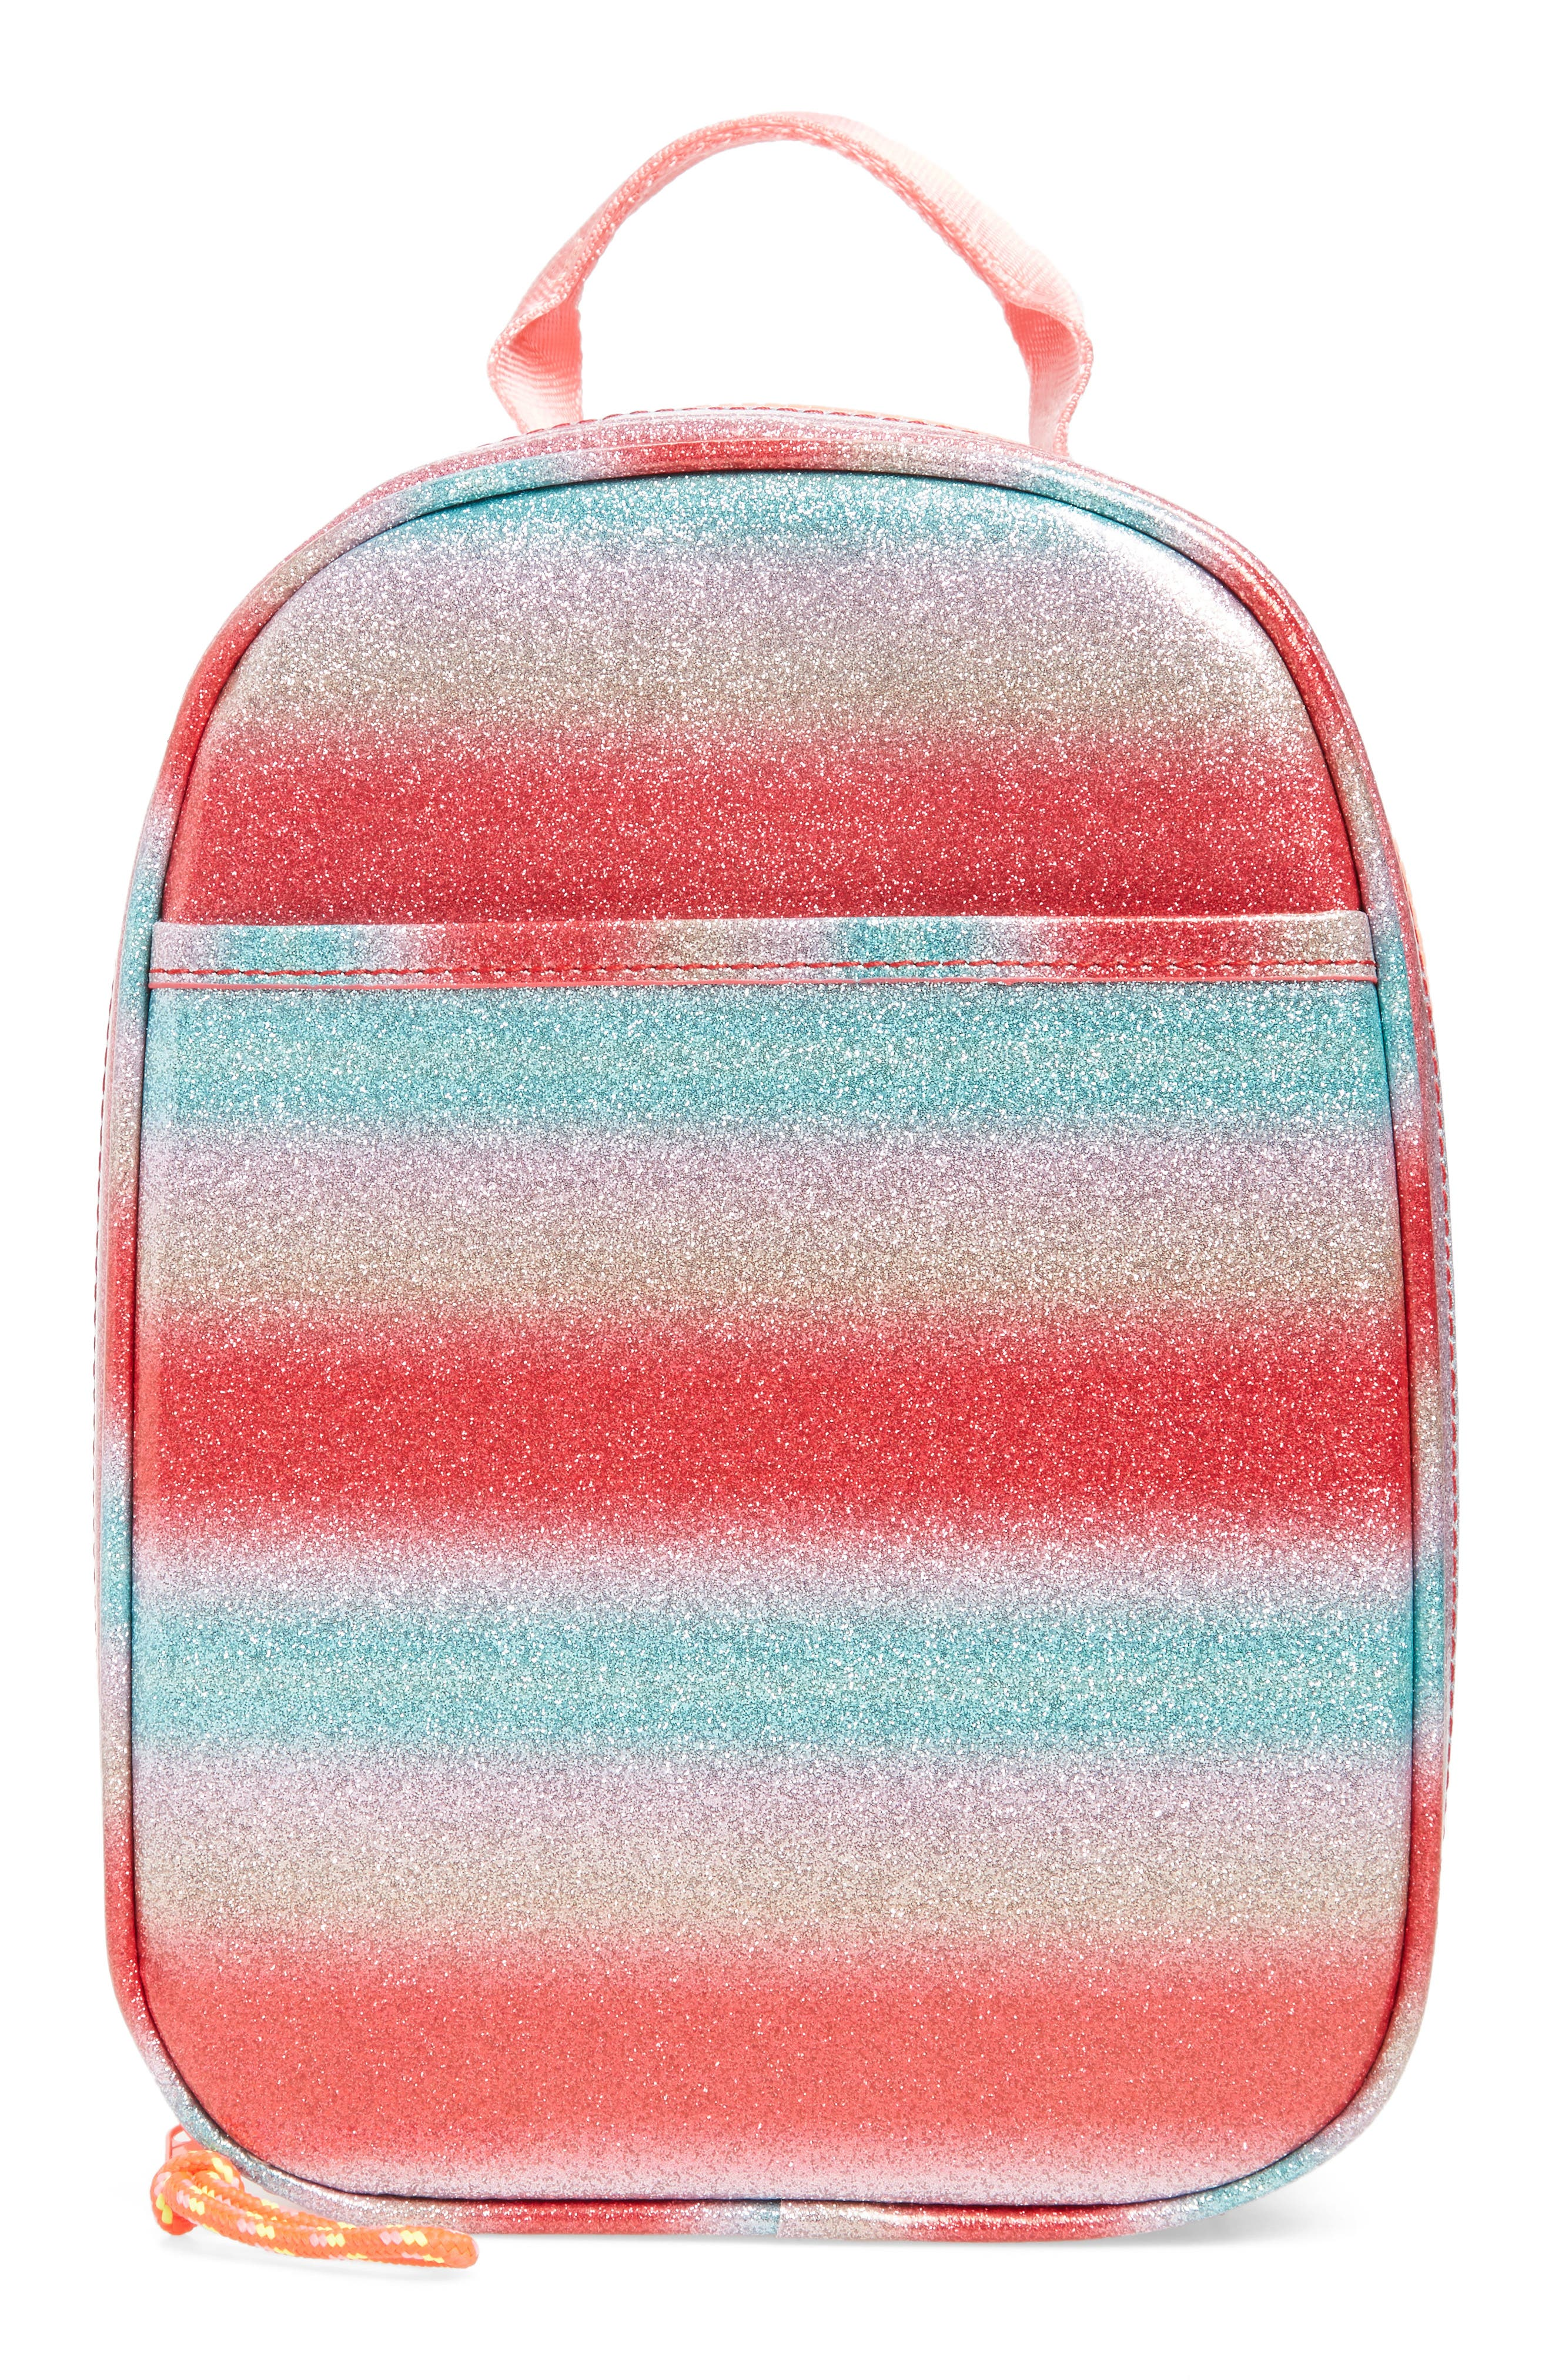 Glitter Stripe Lunch Box,                         Main,                         color, RAINBOW